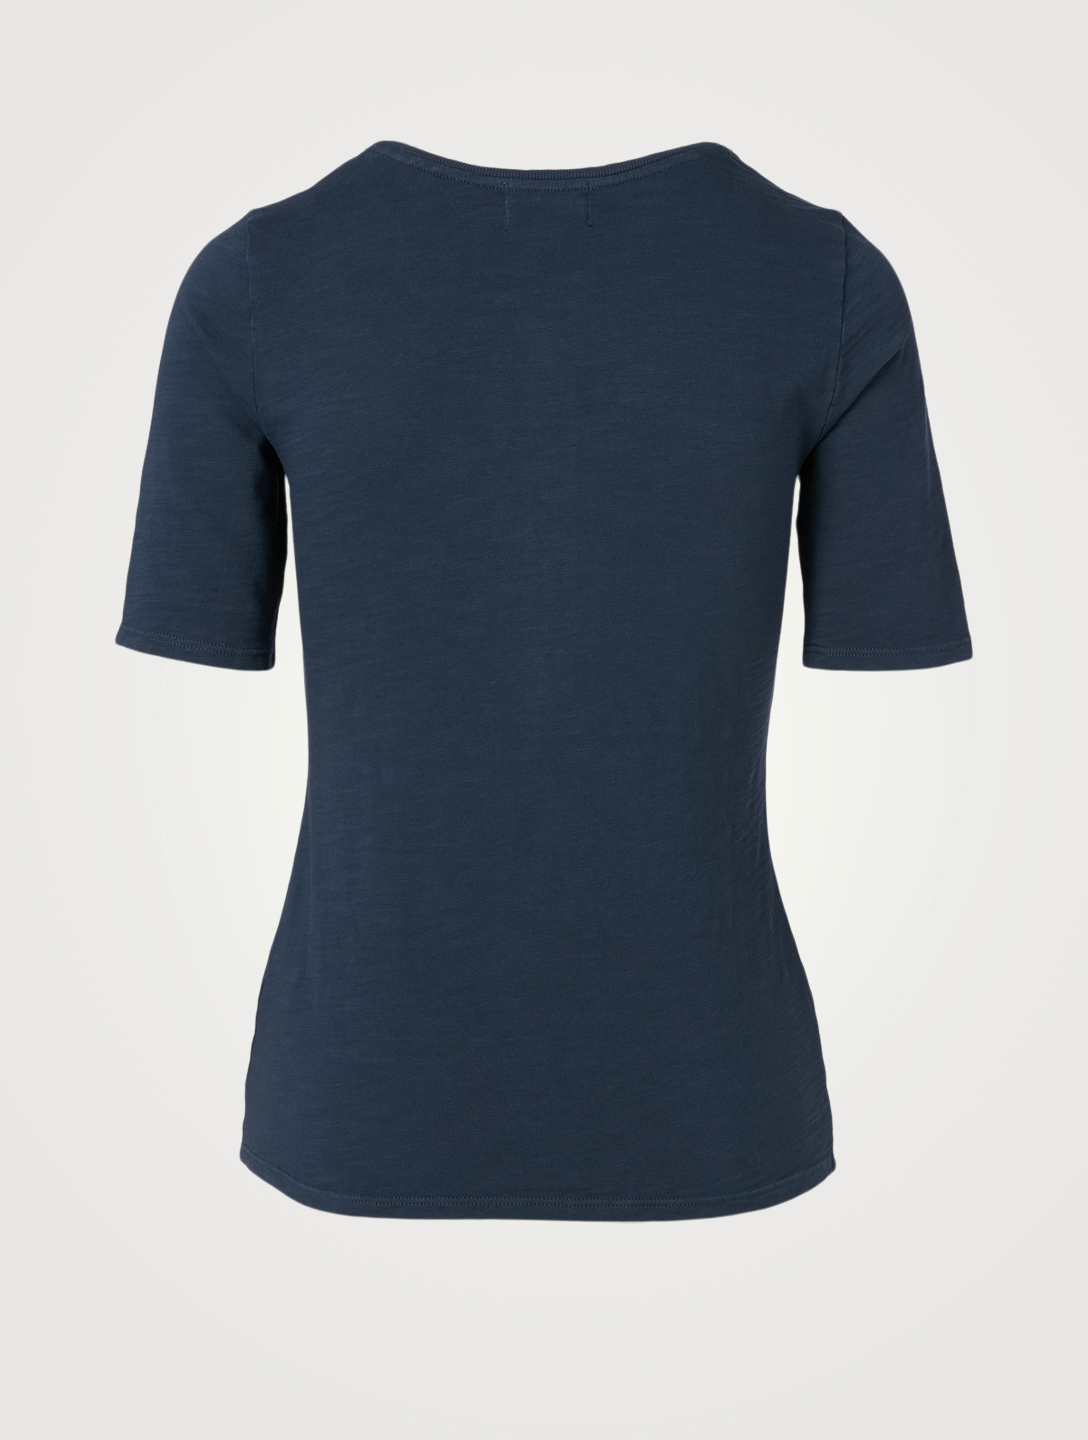 NATION LTD Demi Henley Top With Oversized Snaps Women's Blue